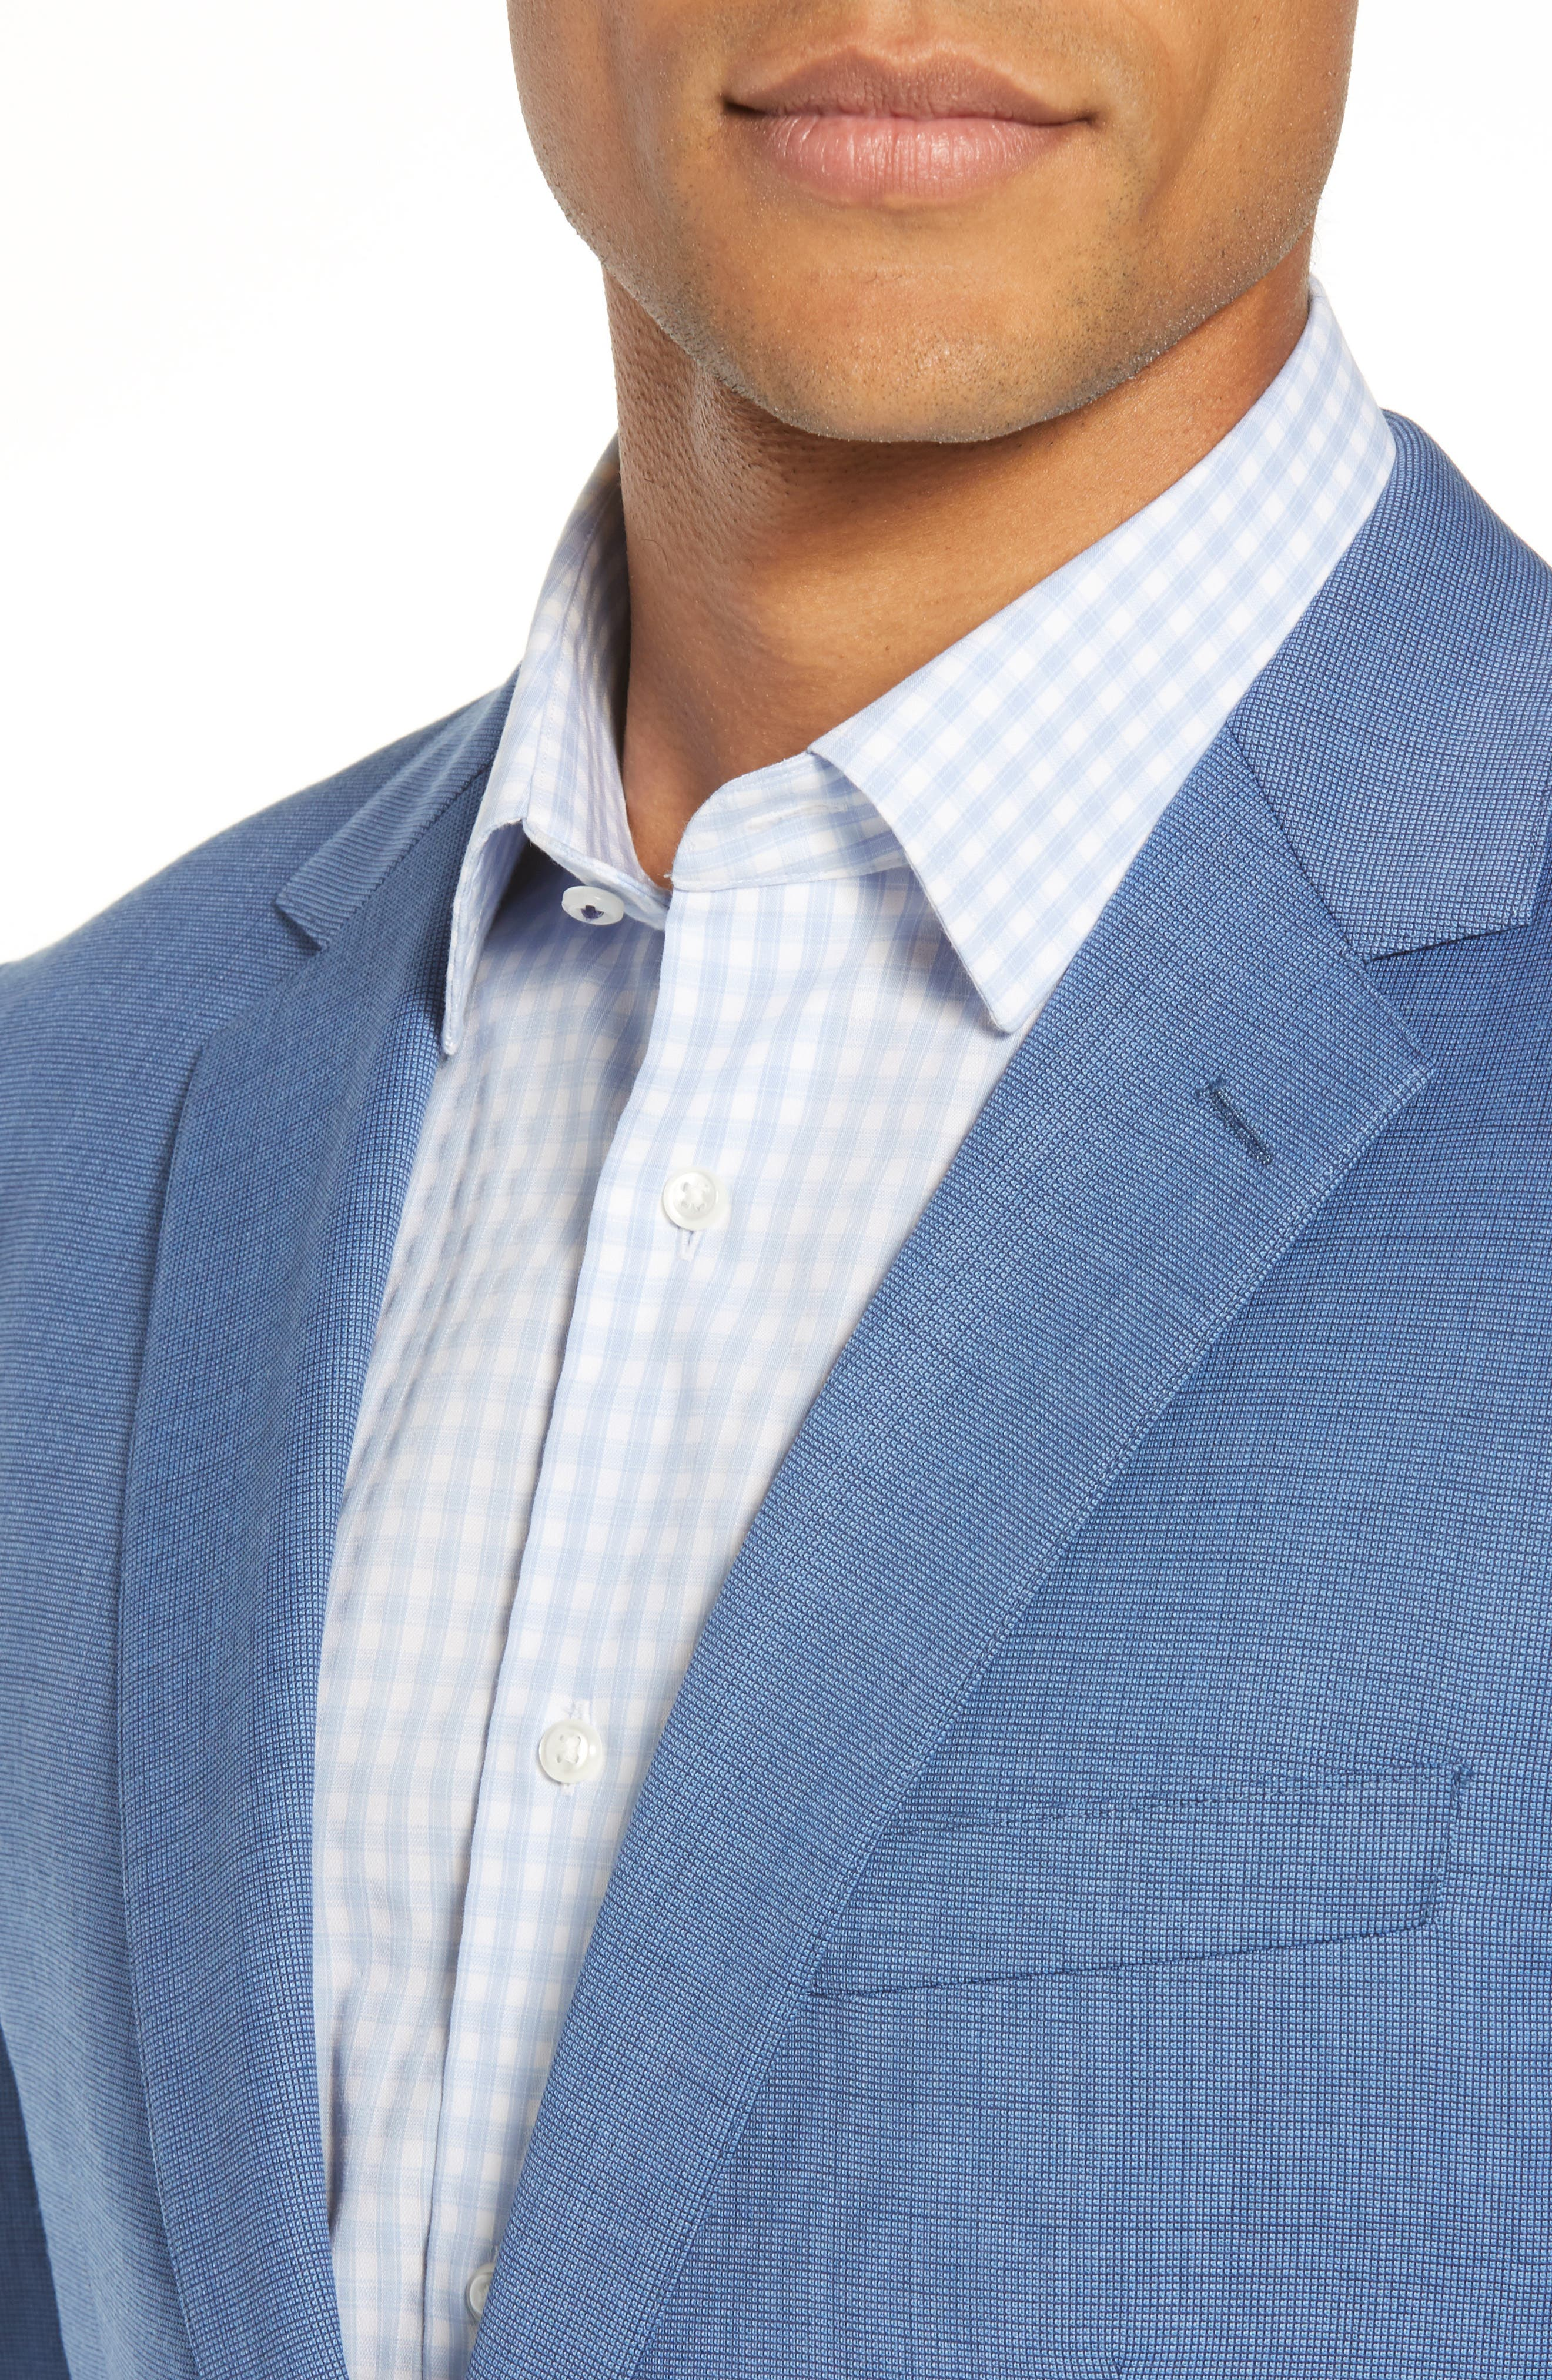 Jetsetter Trim Fit Stretch Solid Wool Suit Jacket,                             Alternate thumbnail 4, color,                             BRIGHTER BLUE